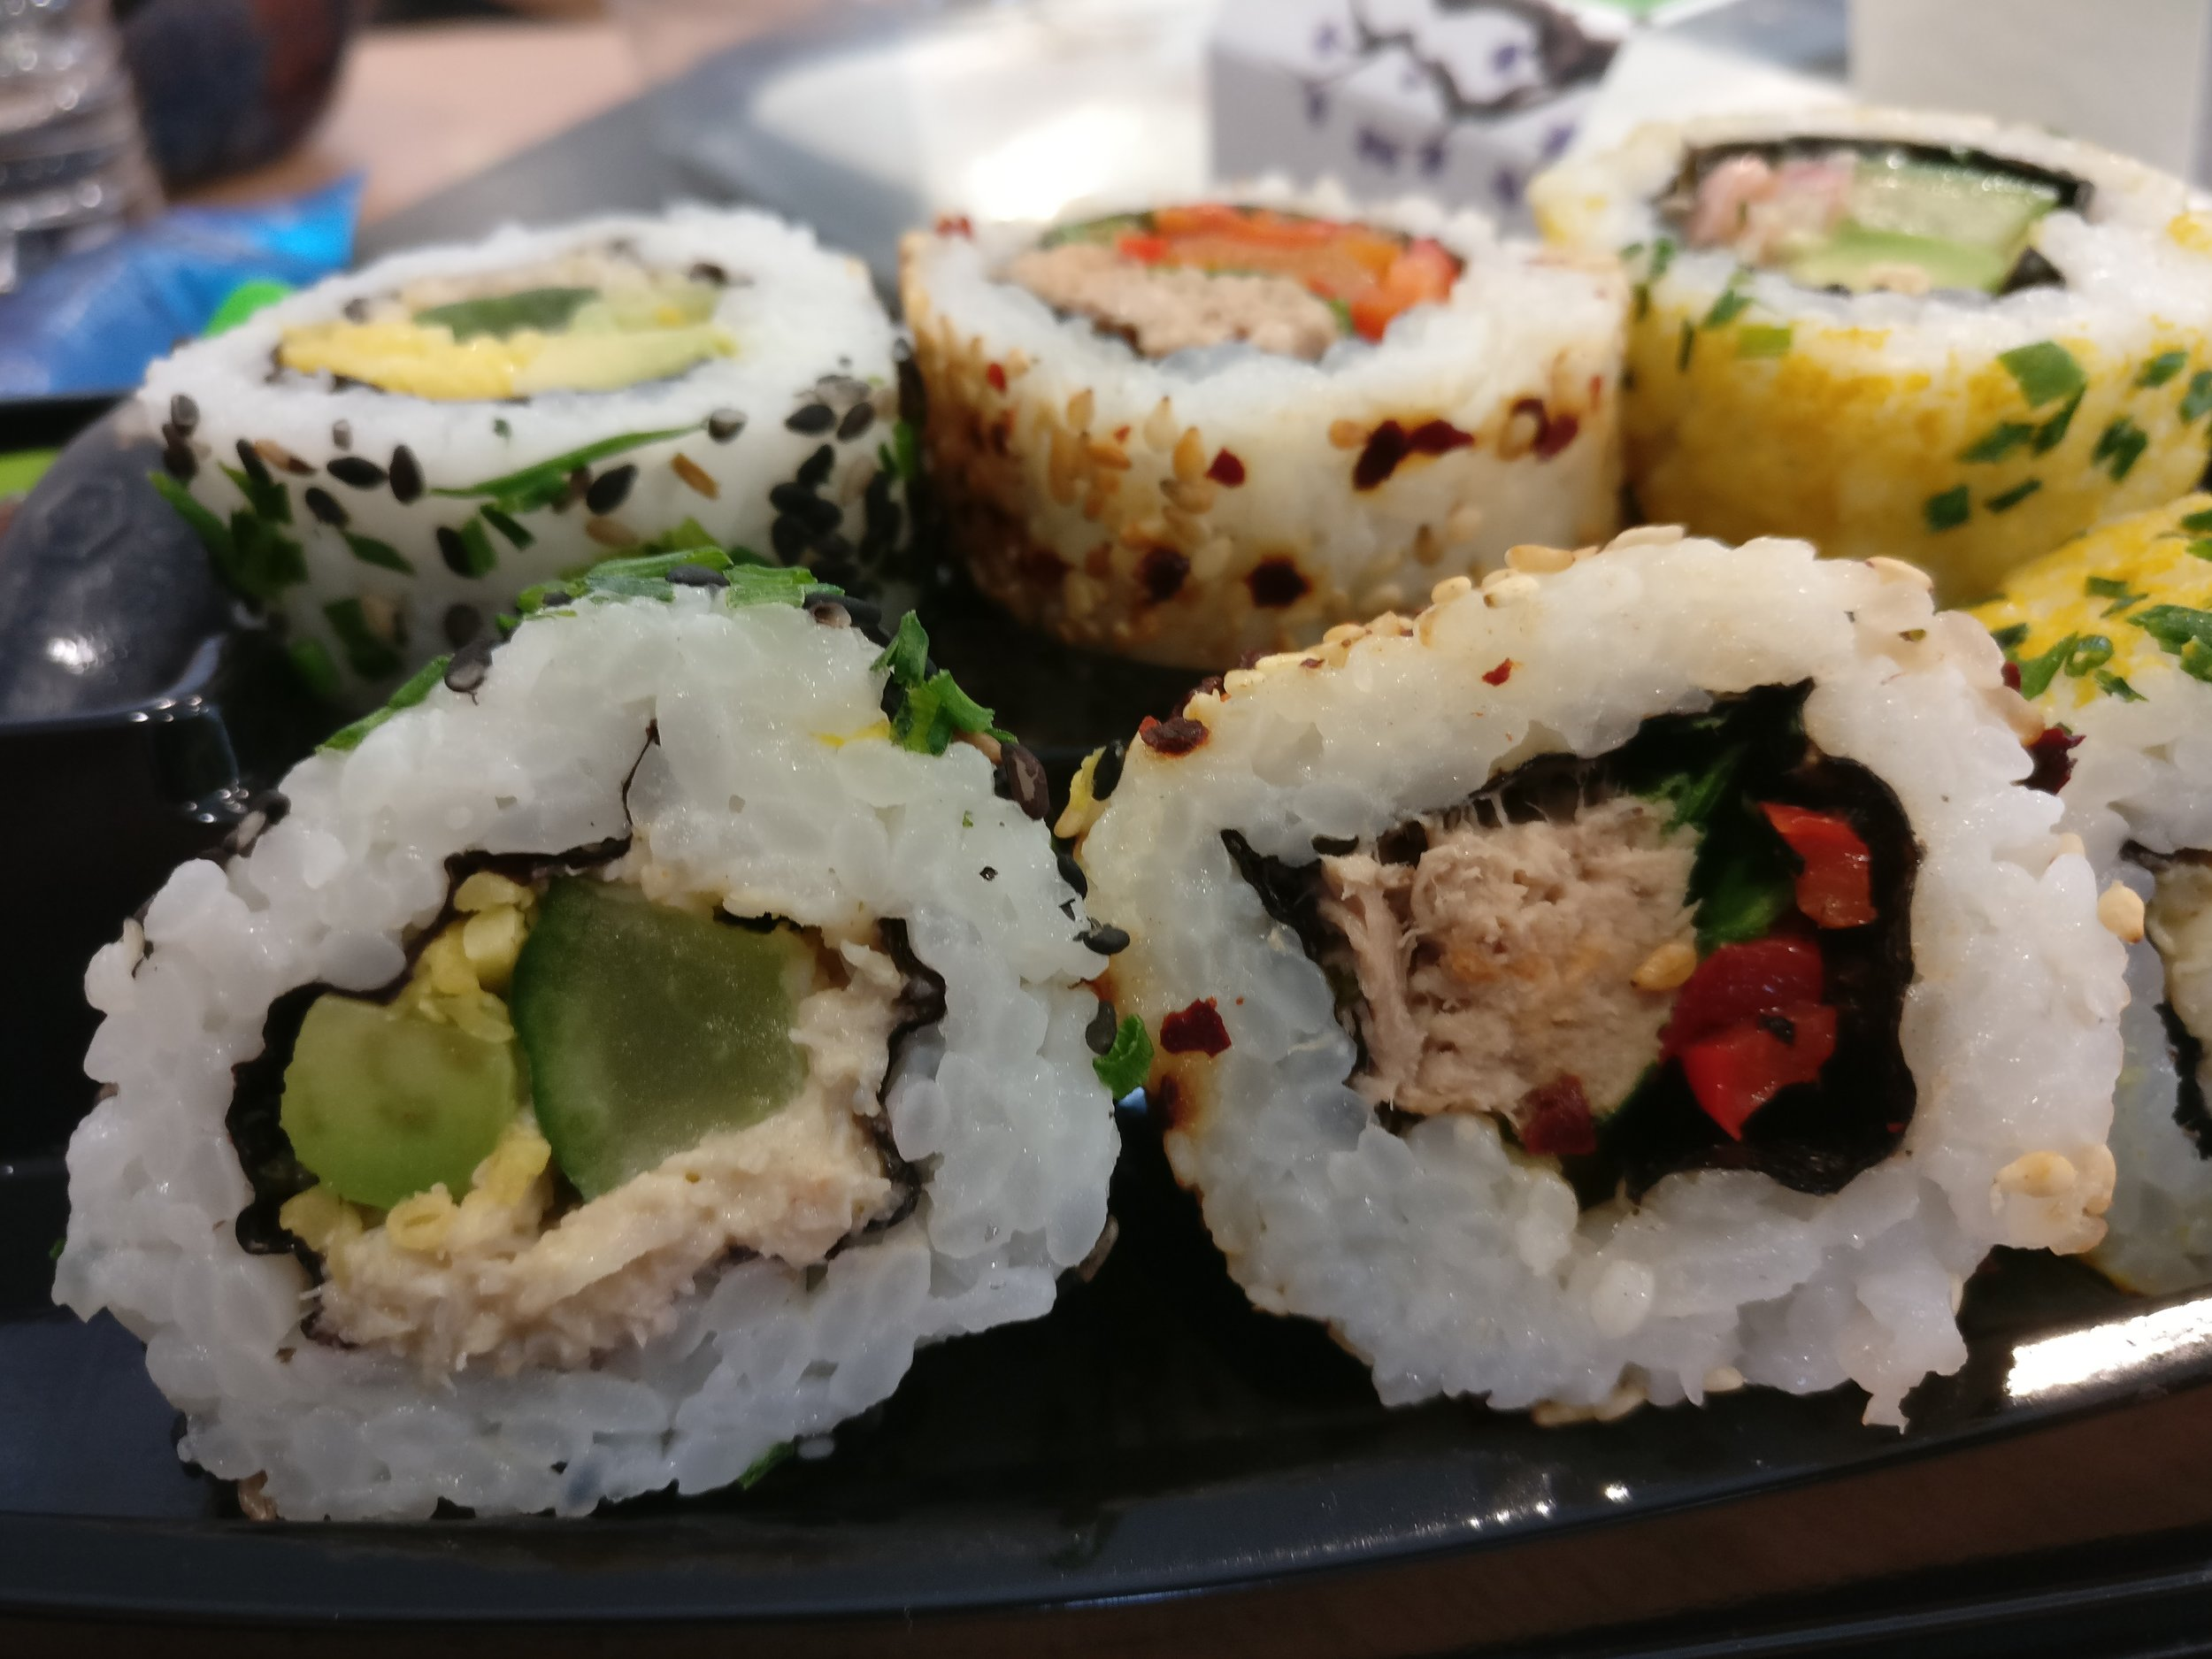 Delicious Marks & Spencer sushi